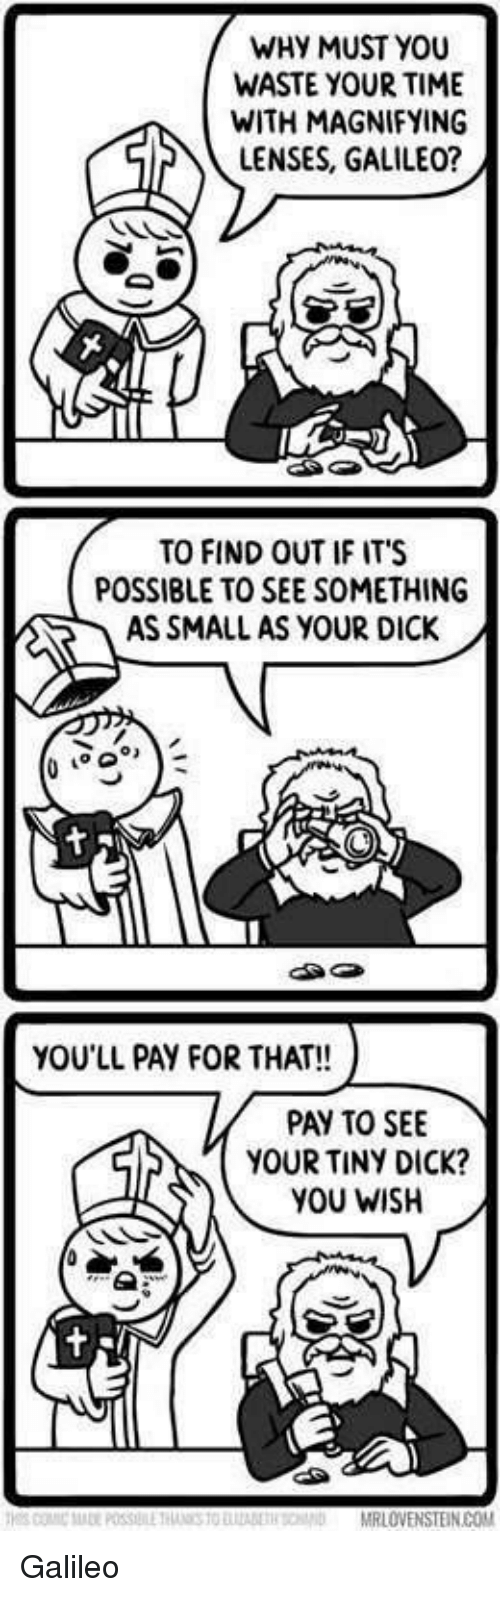 Funny, Dick, and Time: WHY MUST YOU  WASTE YOUR TIME  wifH MAGNIFYING  LENSES, GALILEO  TO FIND OUT IF IT'S  POSSIBLE TO SEE SOMETHING  AS SMALL AS YOUR DICK  ga  YOU'LL PAY FOR THAT!!  PAY TO SEE  YOUR TINY DICK?  YOU WISH Galileo